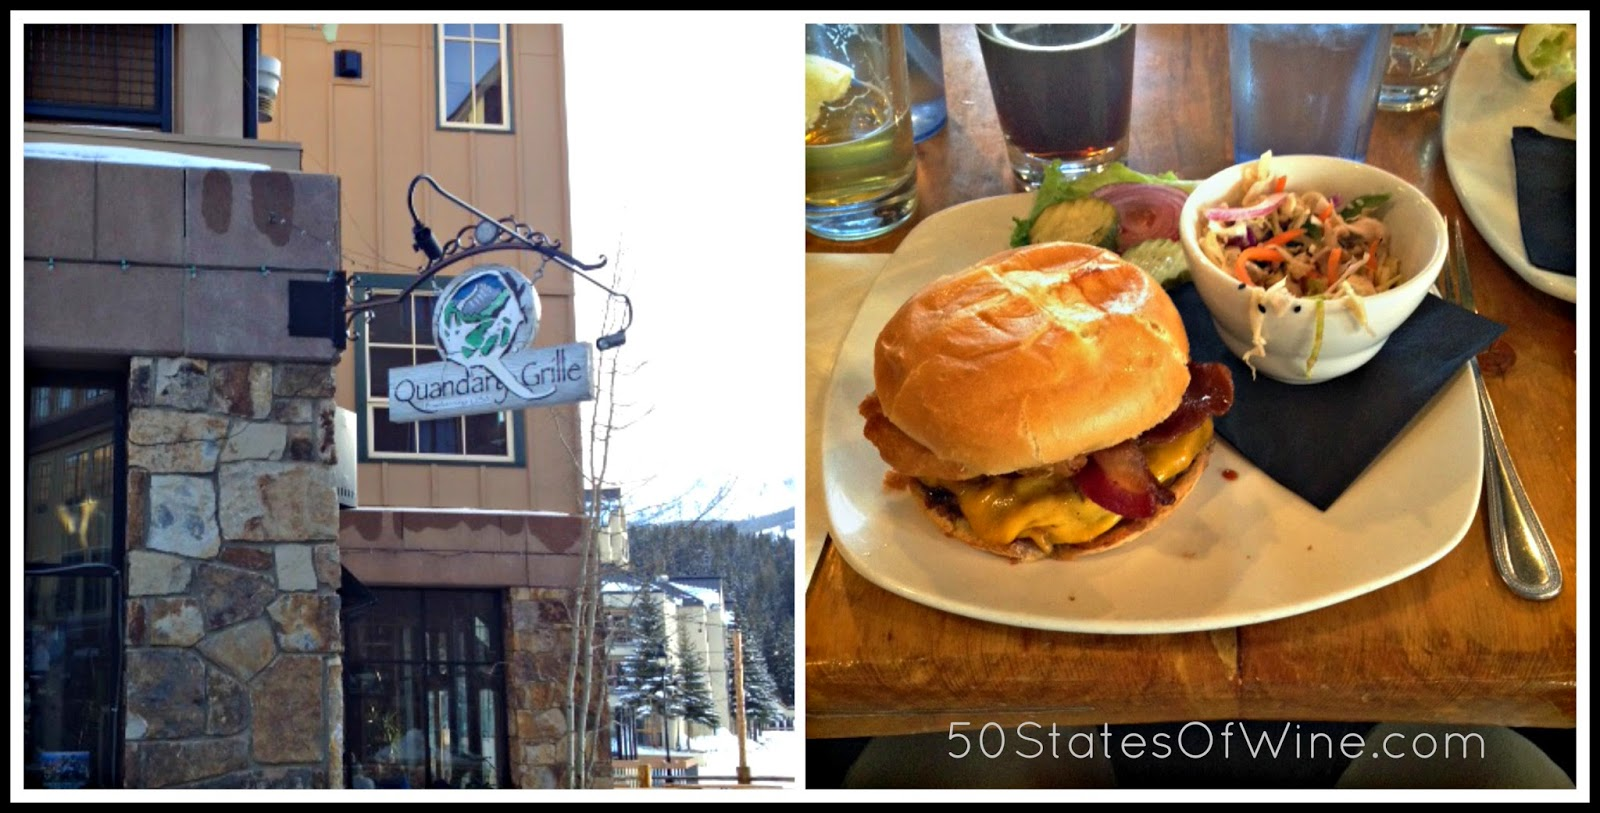 Restaurants in Breckenridge Quandary Grille